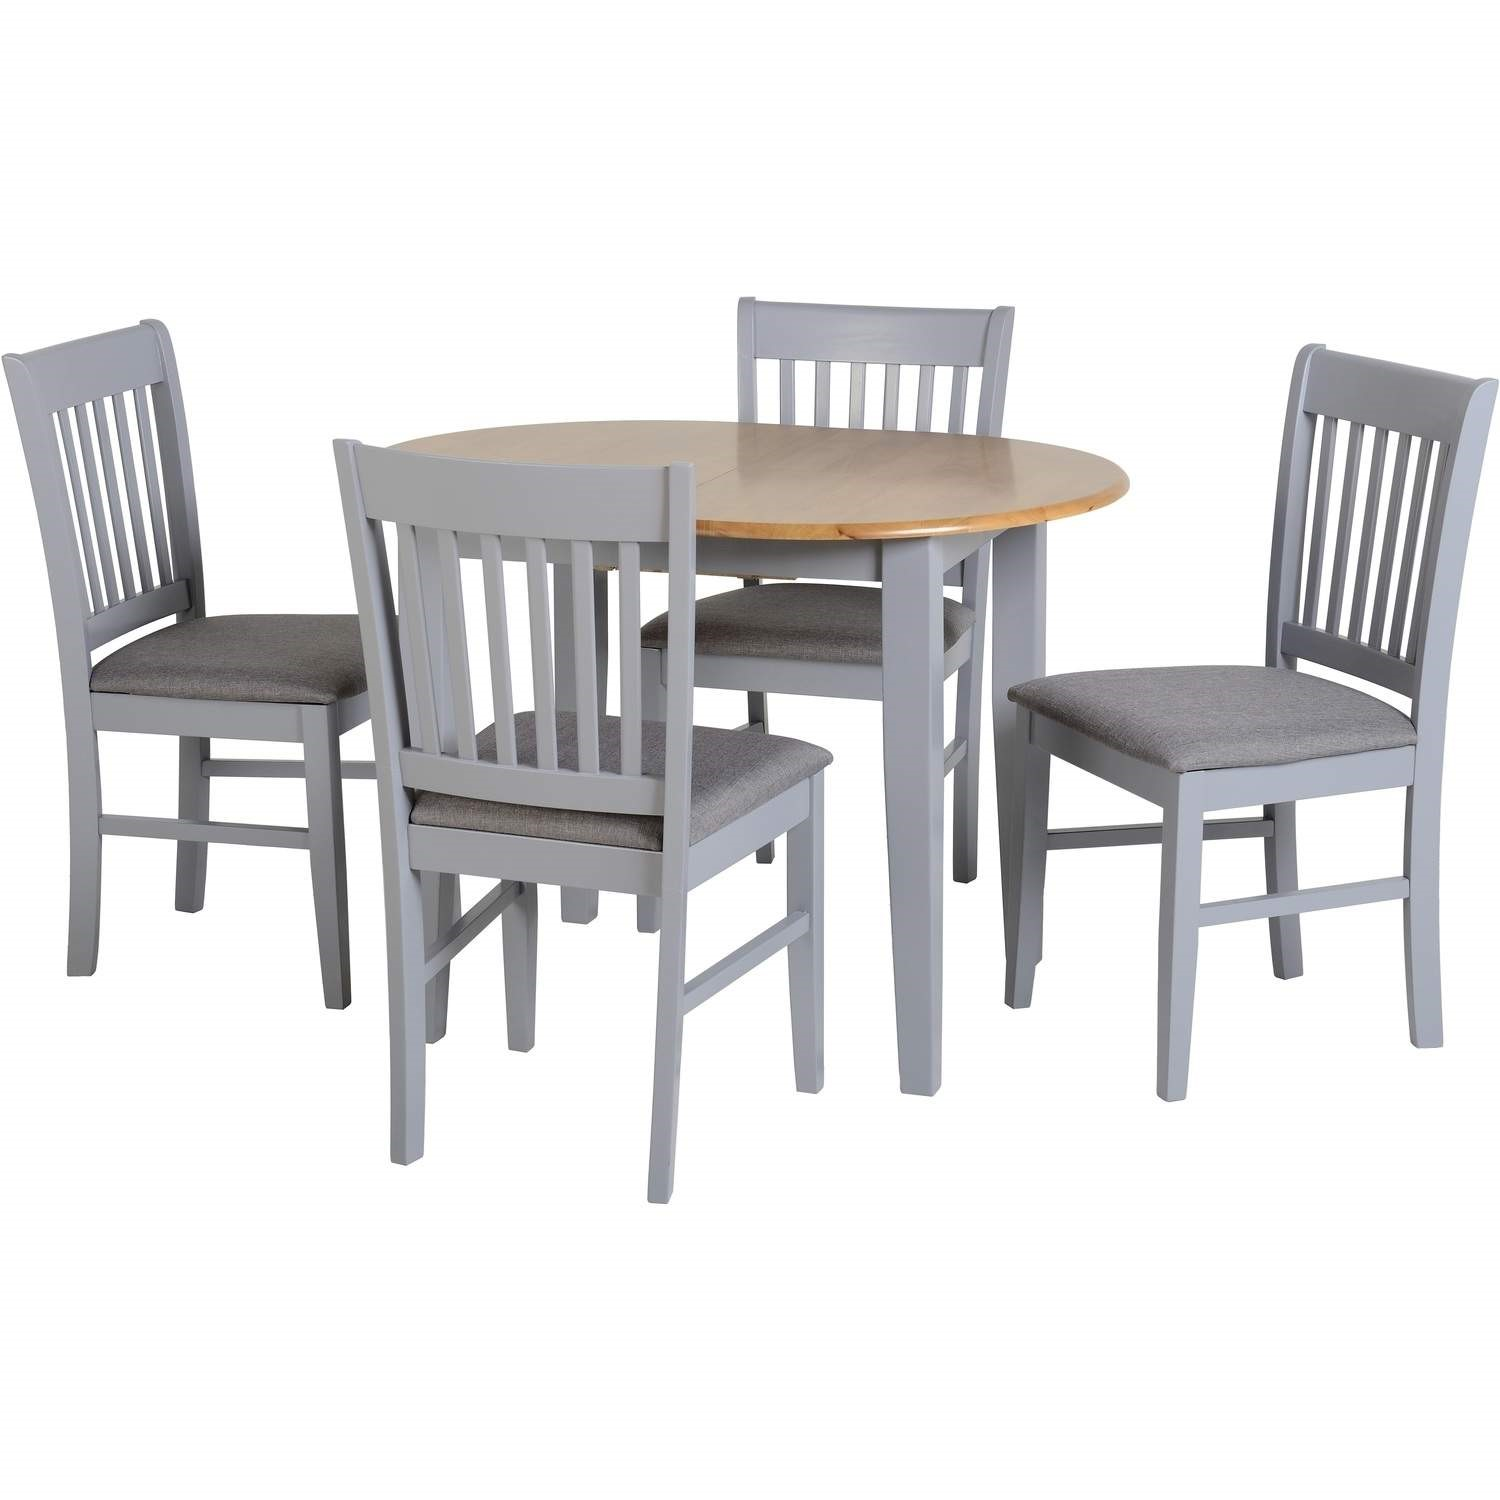 Seconique Oxford Extending Dining Set in Grey/Natural Oak/Gr